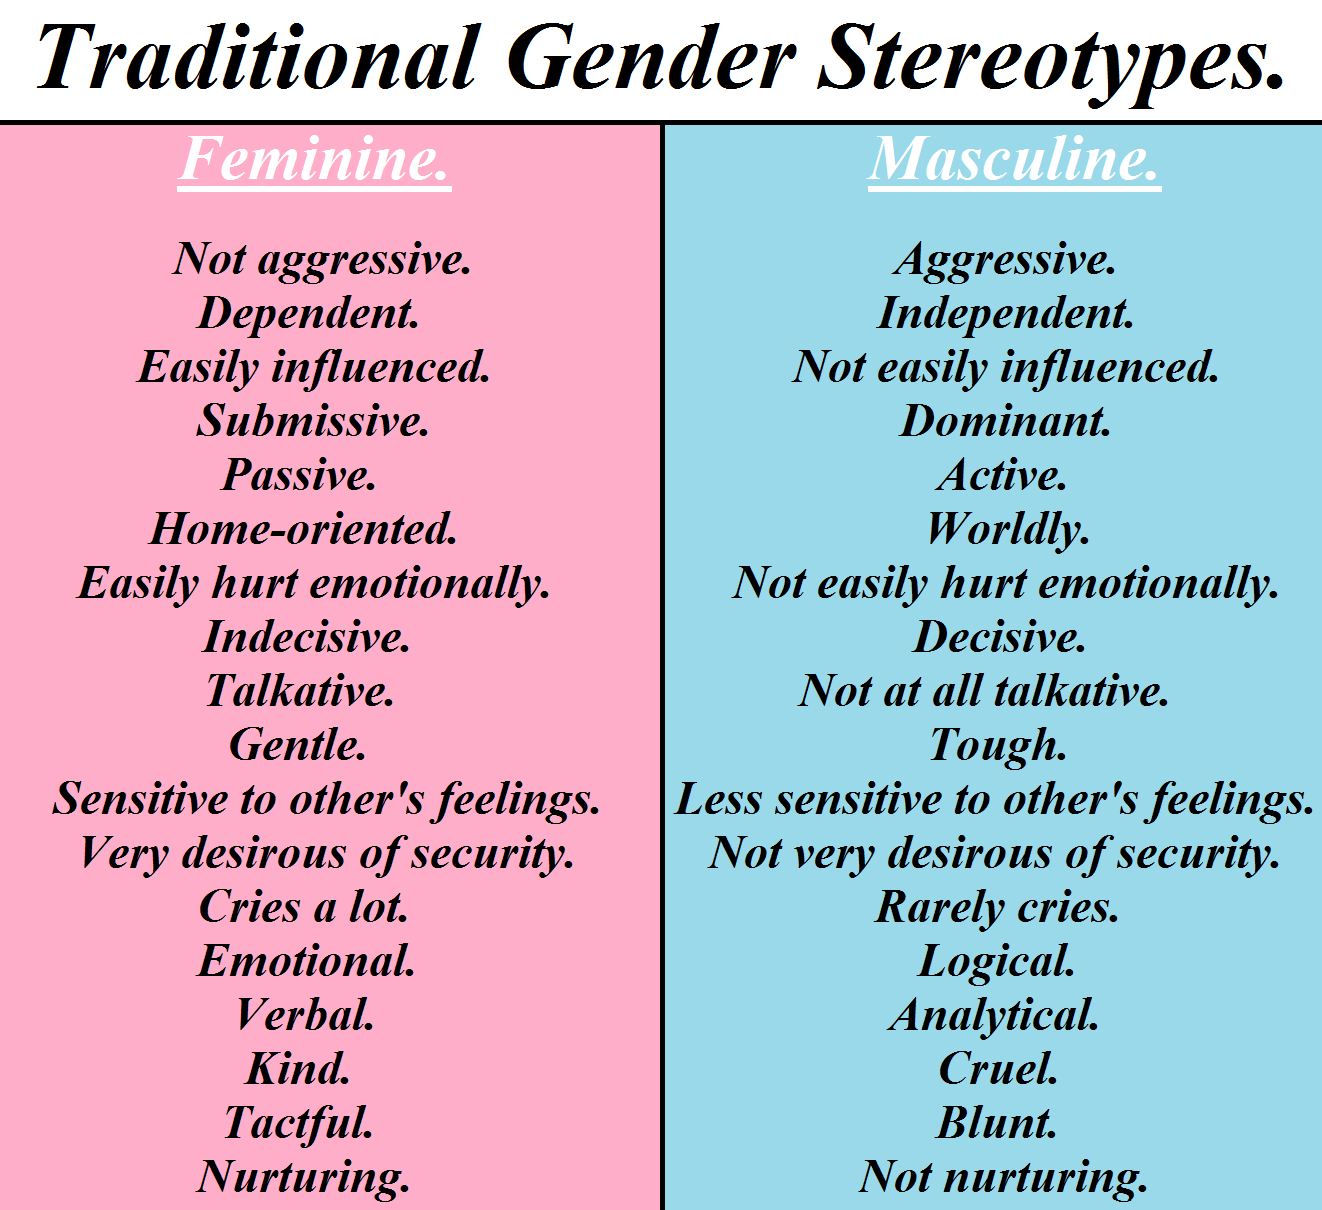 discrimination and stereotyping essays